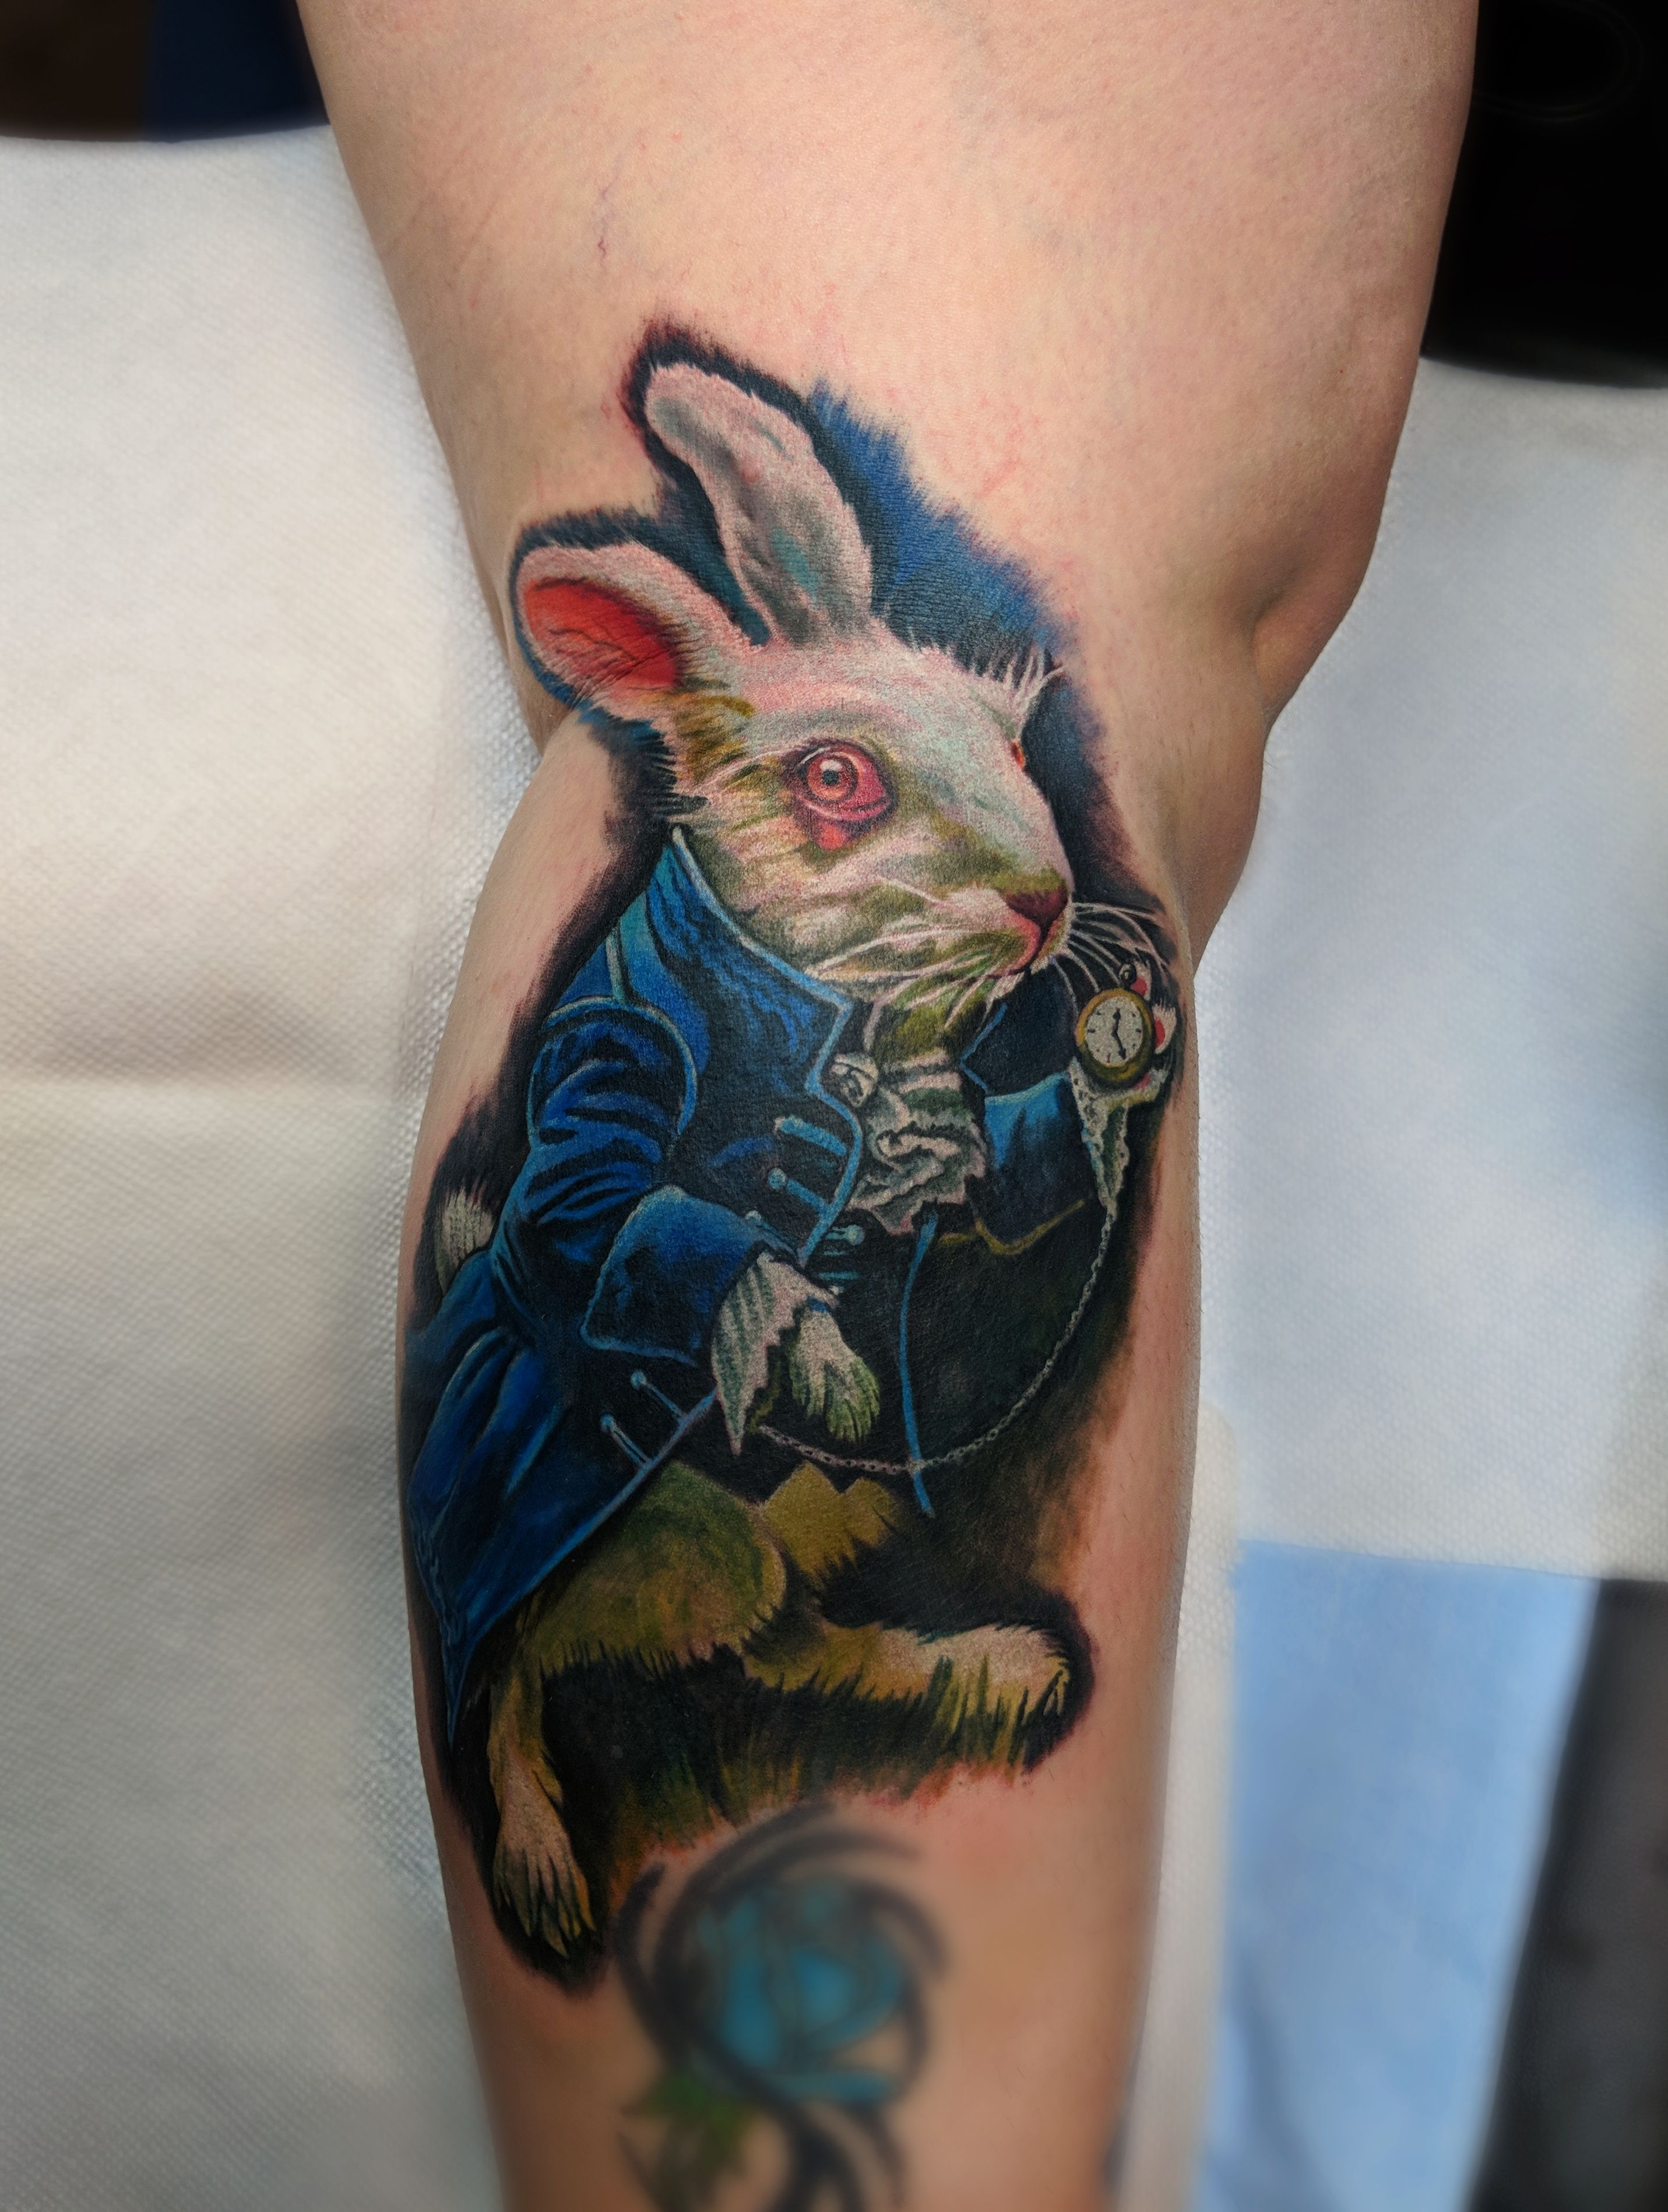 White Rabbit Tattoo